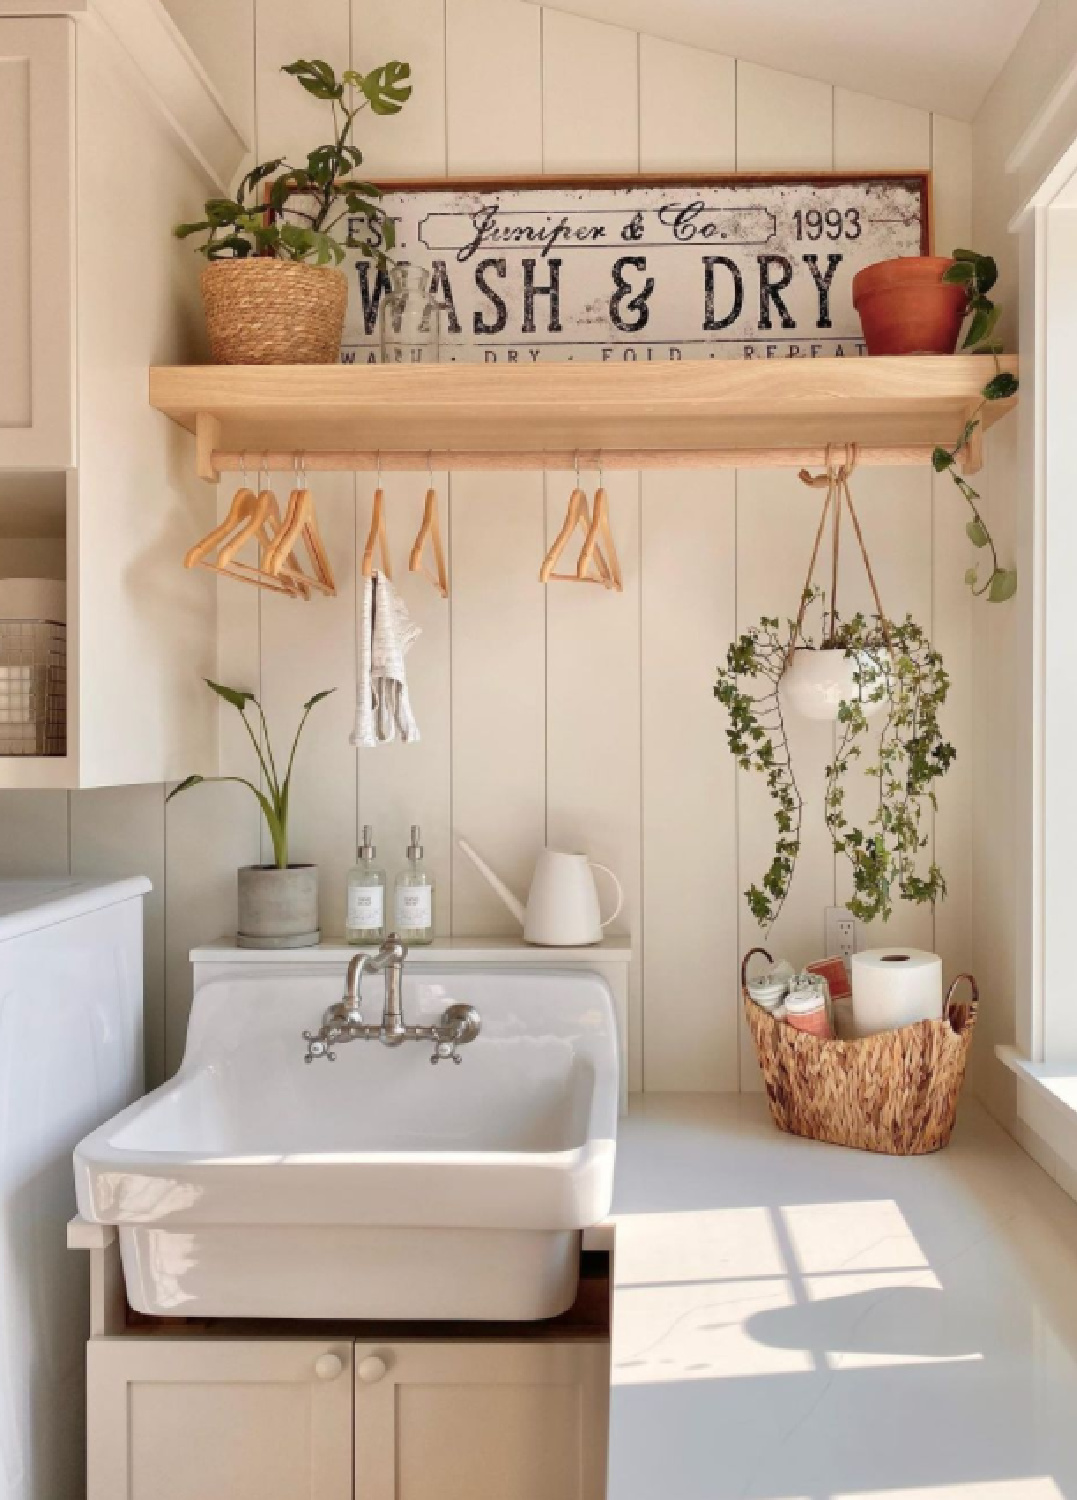 Beautiful farmhouse style country laundry room with space to hang clothing above farm sink and folding counter under window - @juniper.creek.farmhouse #farmhousestyle laundryrooms